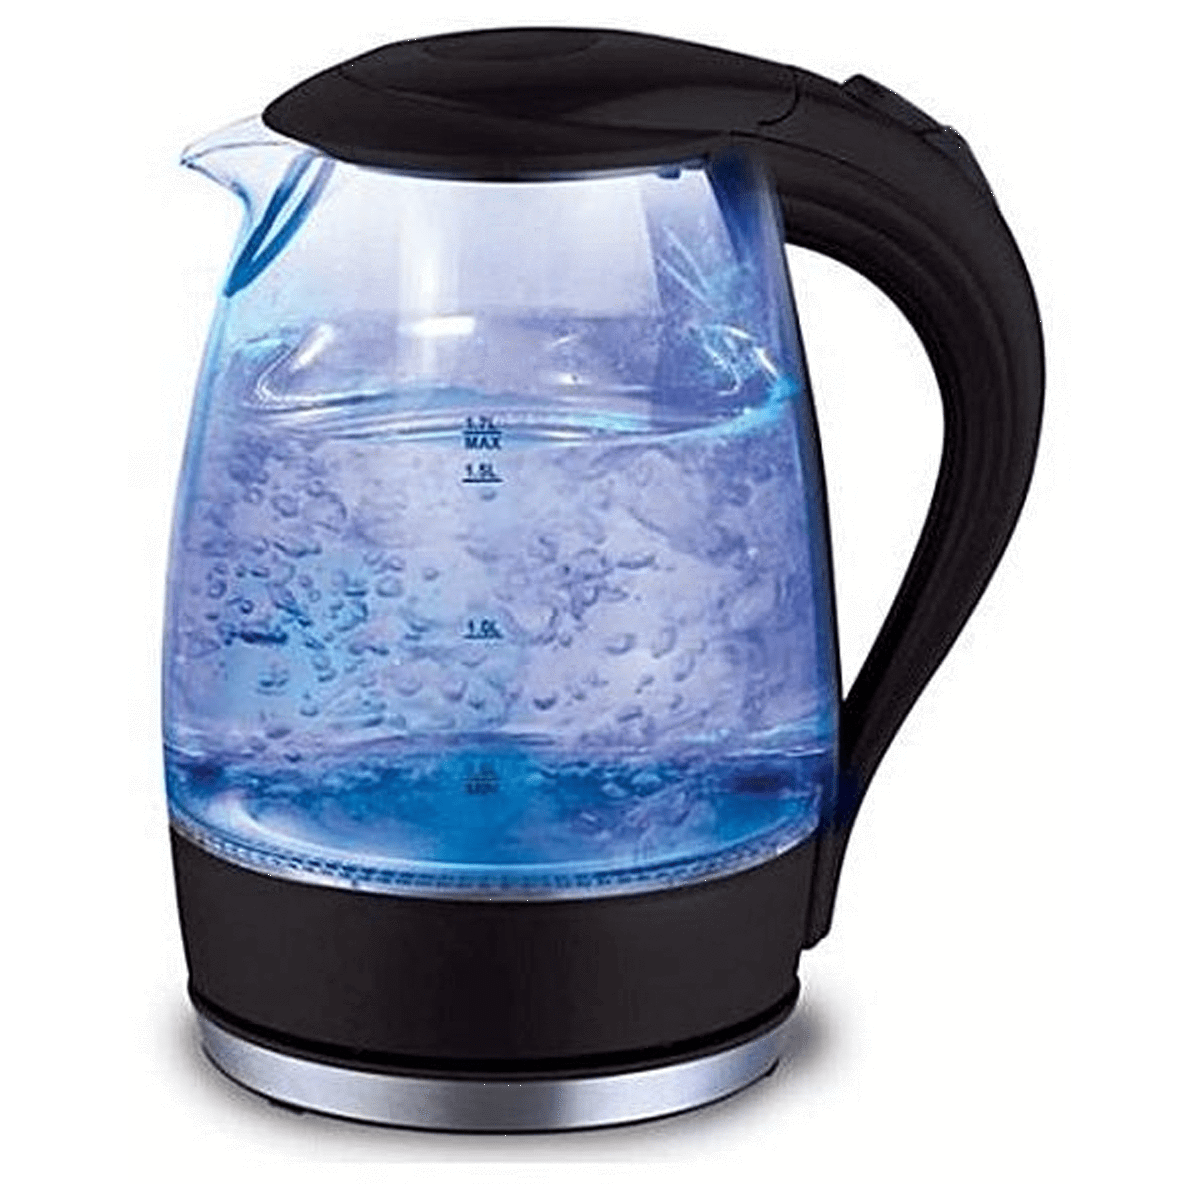 Sokany Electric Kettle 2200 Watt - 1.7 Liter, Black